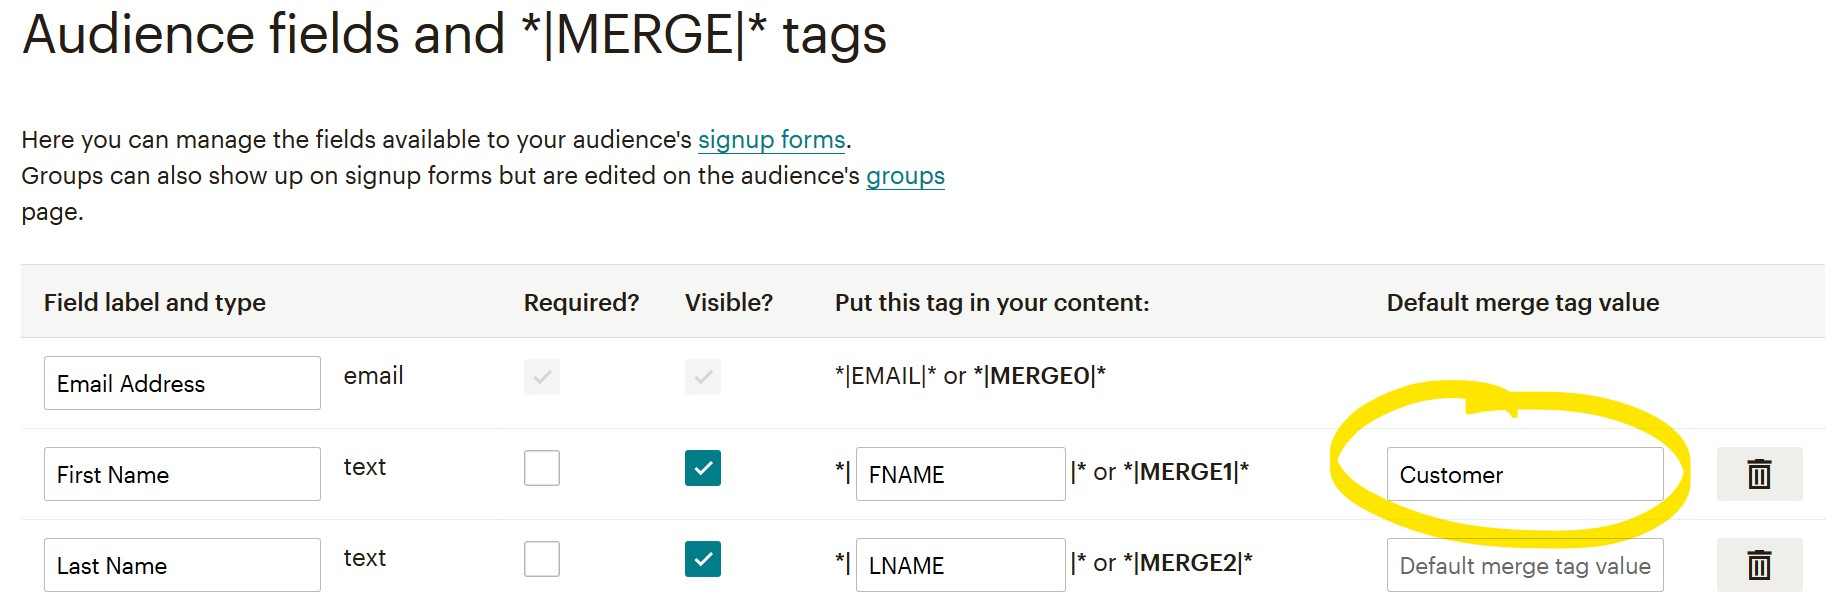 Where to enter the default merge tag value foe a Mailchimp first name.